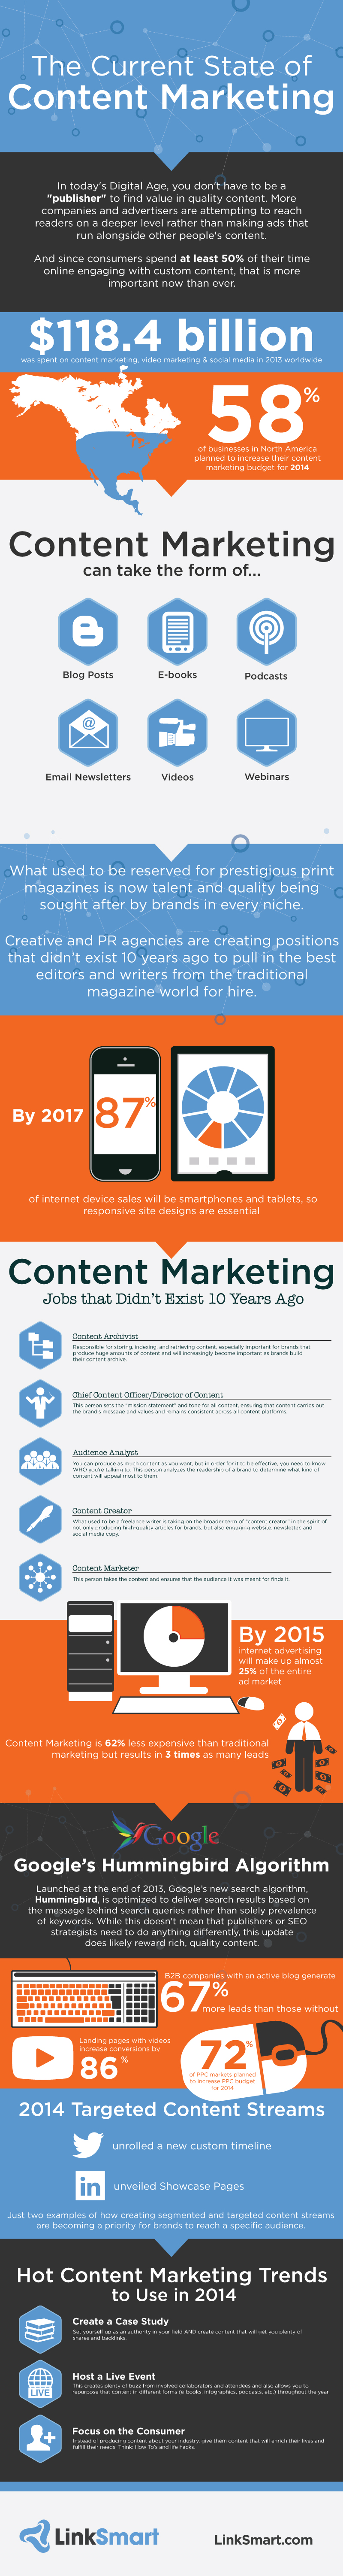 The Current State of Content Marketing Infographic